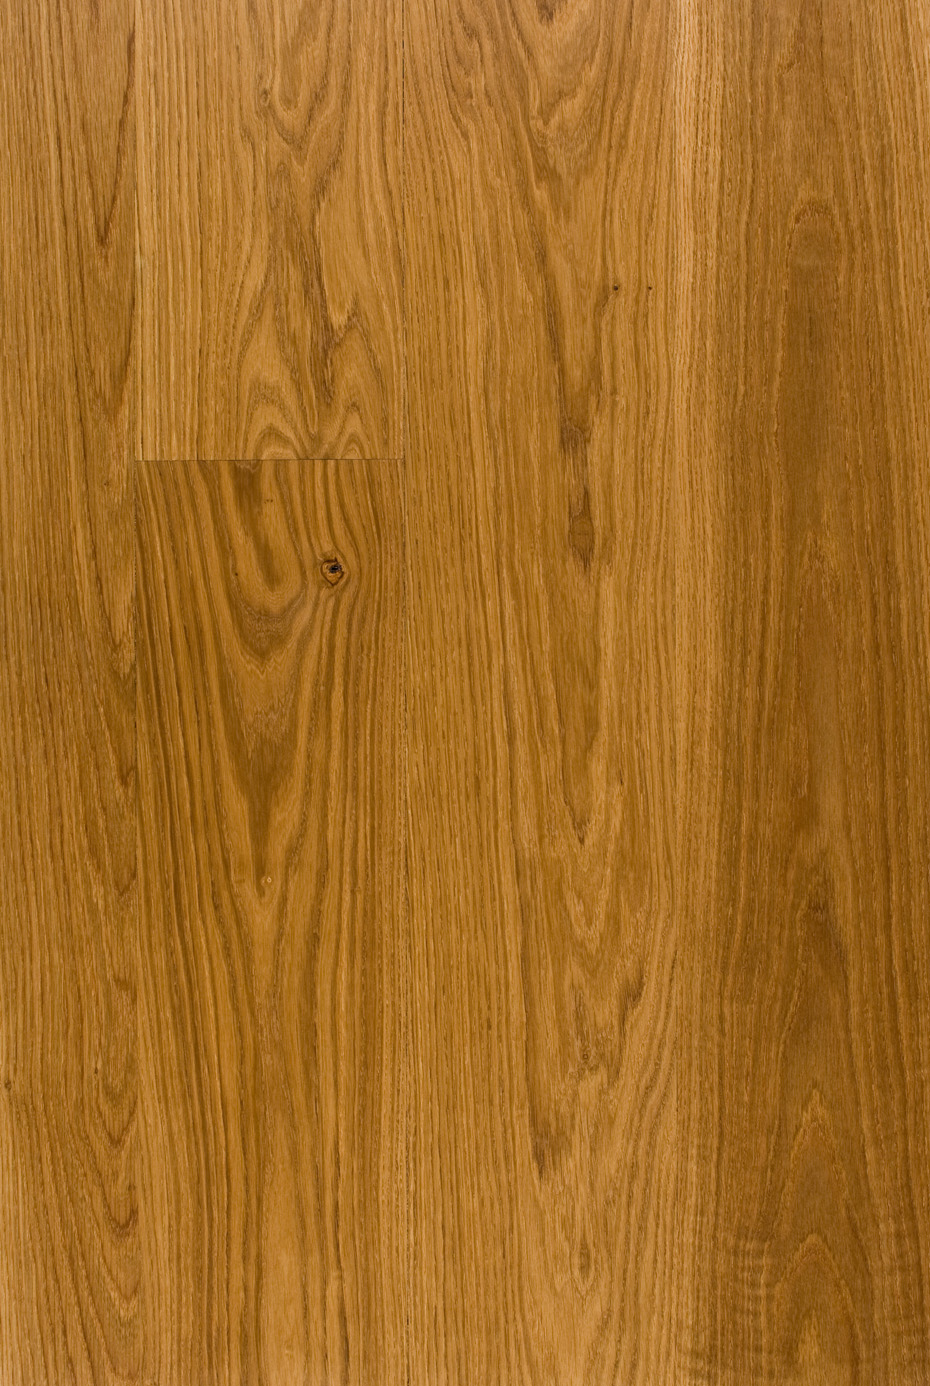 Laminate flooring voc wood floors for Hard laminate flooring